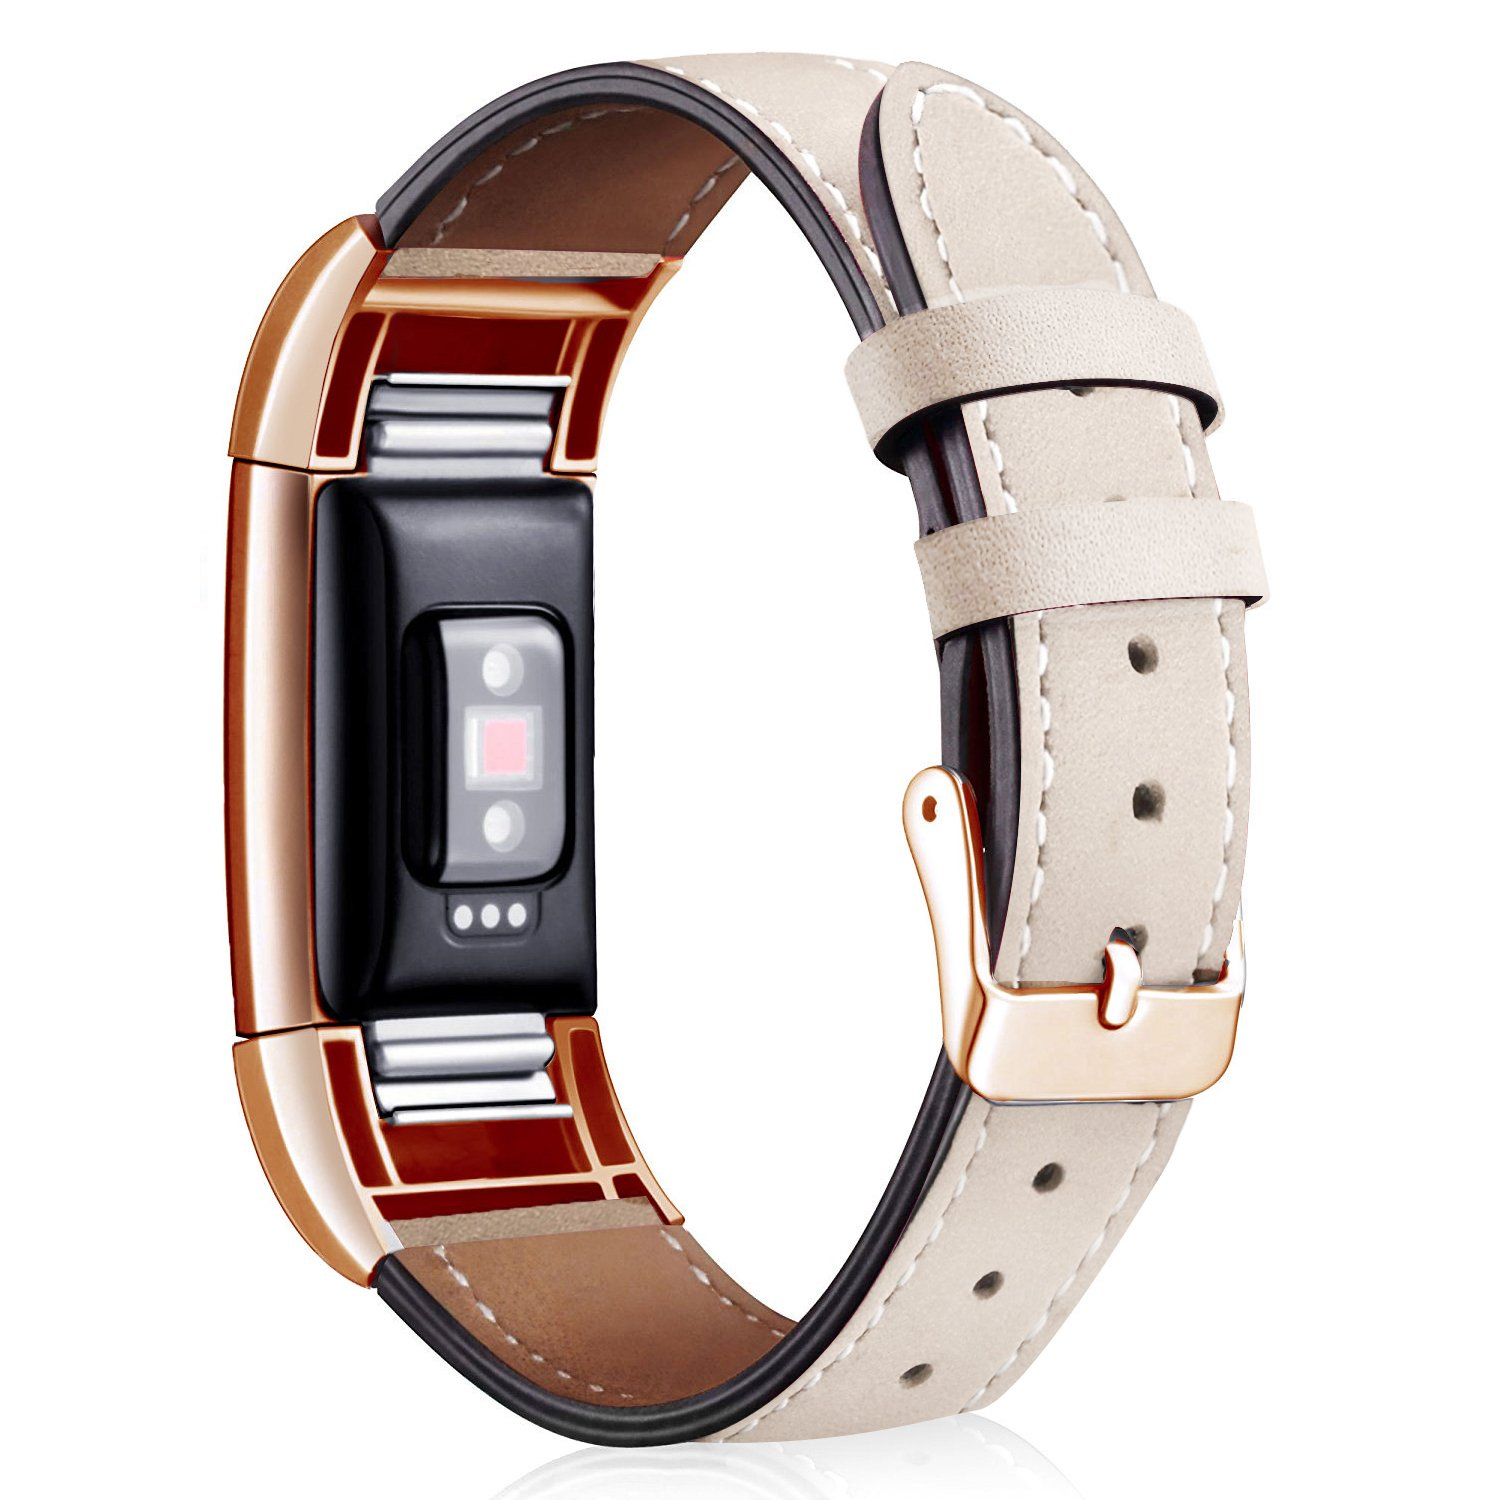 Wearlizer For Fitbit Charge 2 Leather Bands Special Edition Lavender Rose Gold Buckle, Replacement Charge 2 hr Leather Band Straps Accessories Small Large Women